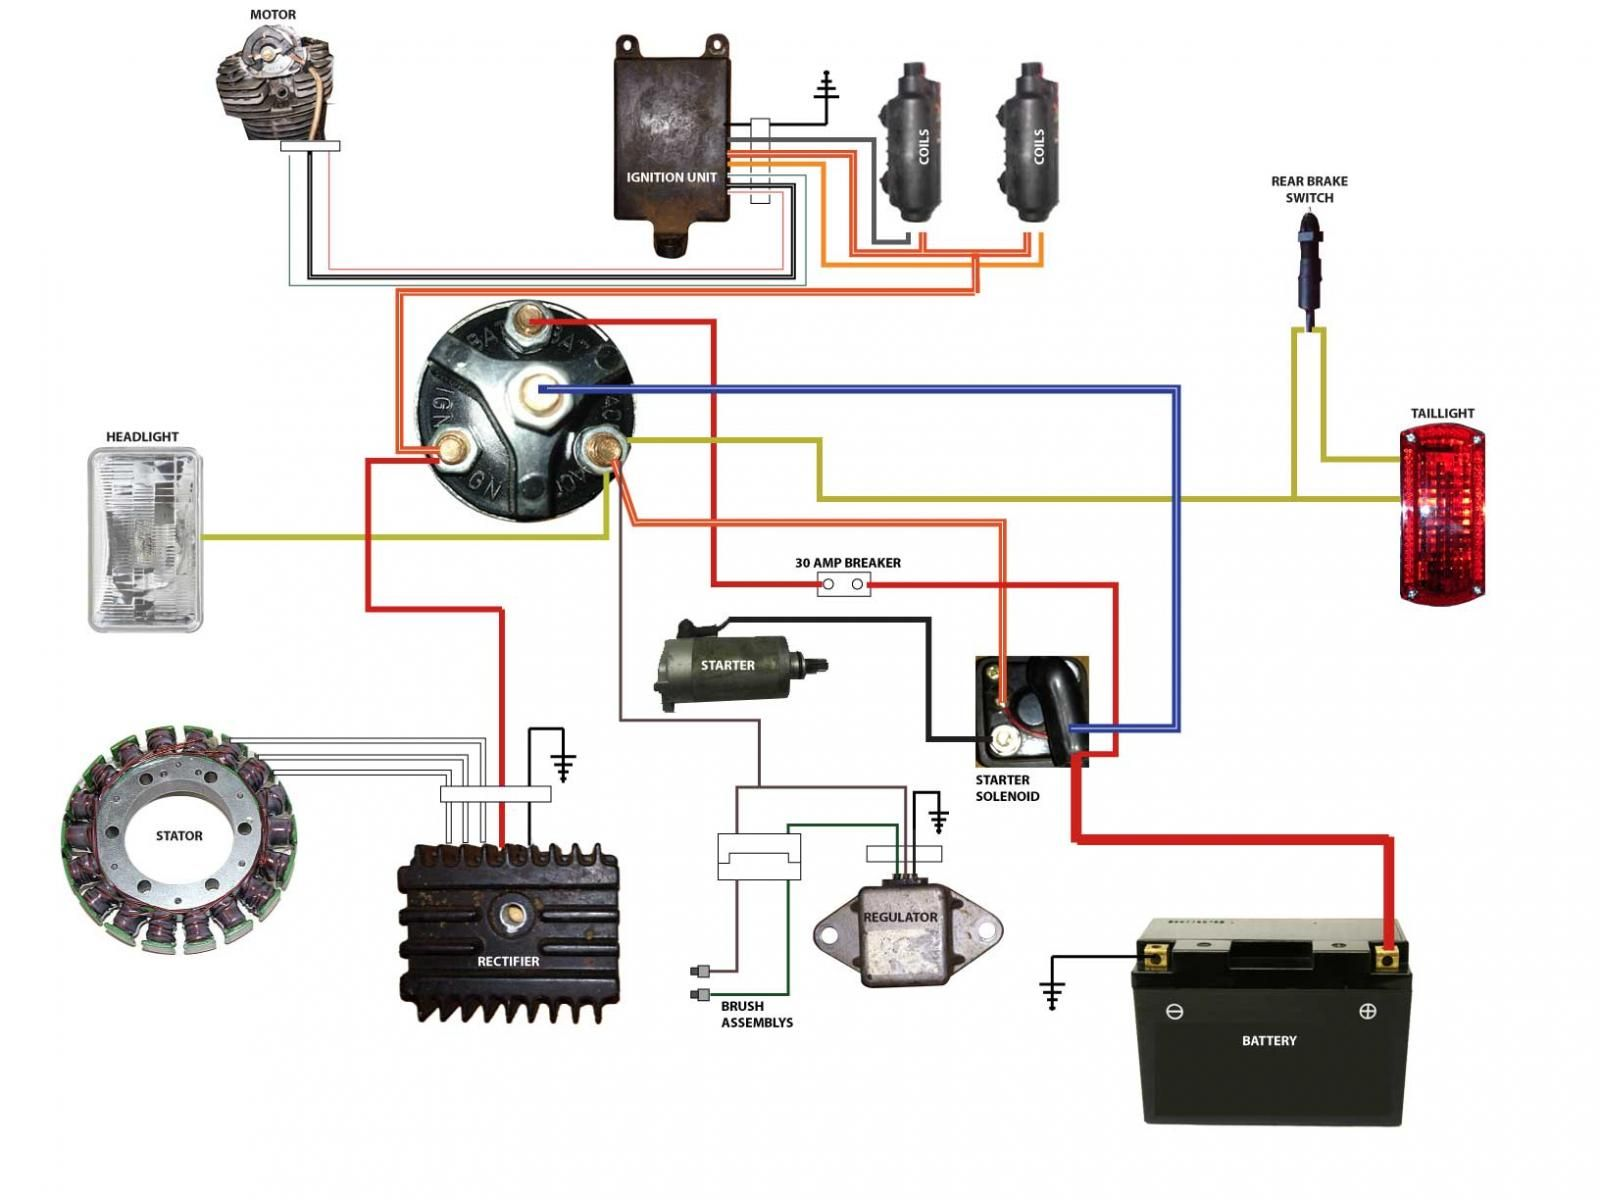 medium resolution of 1979 yamaha xs400 wiring diagram